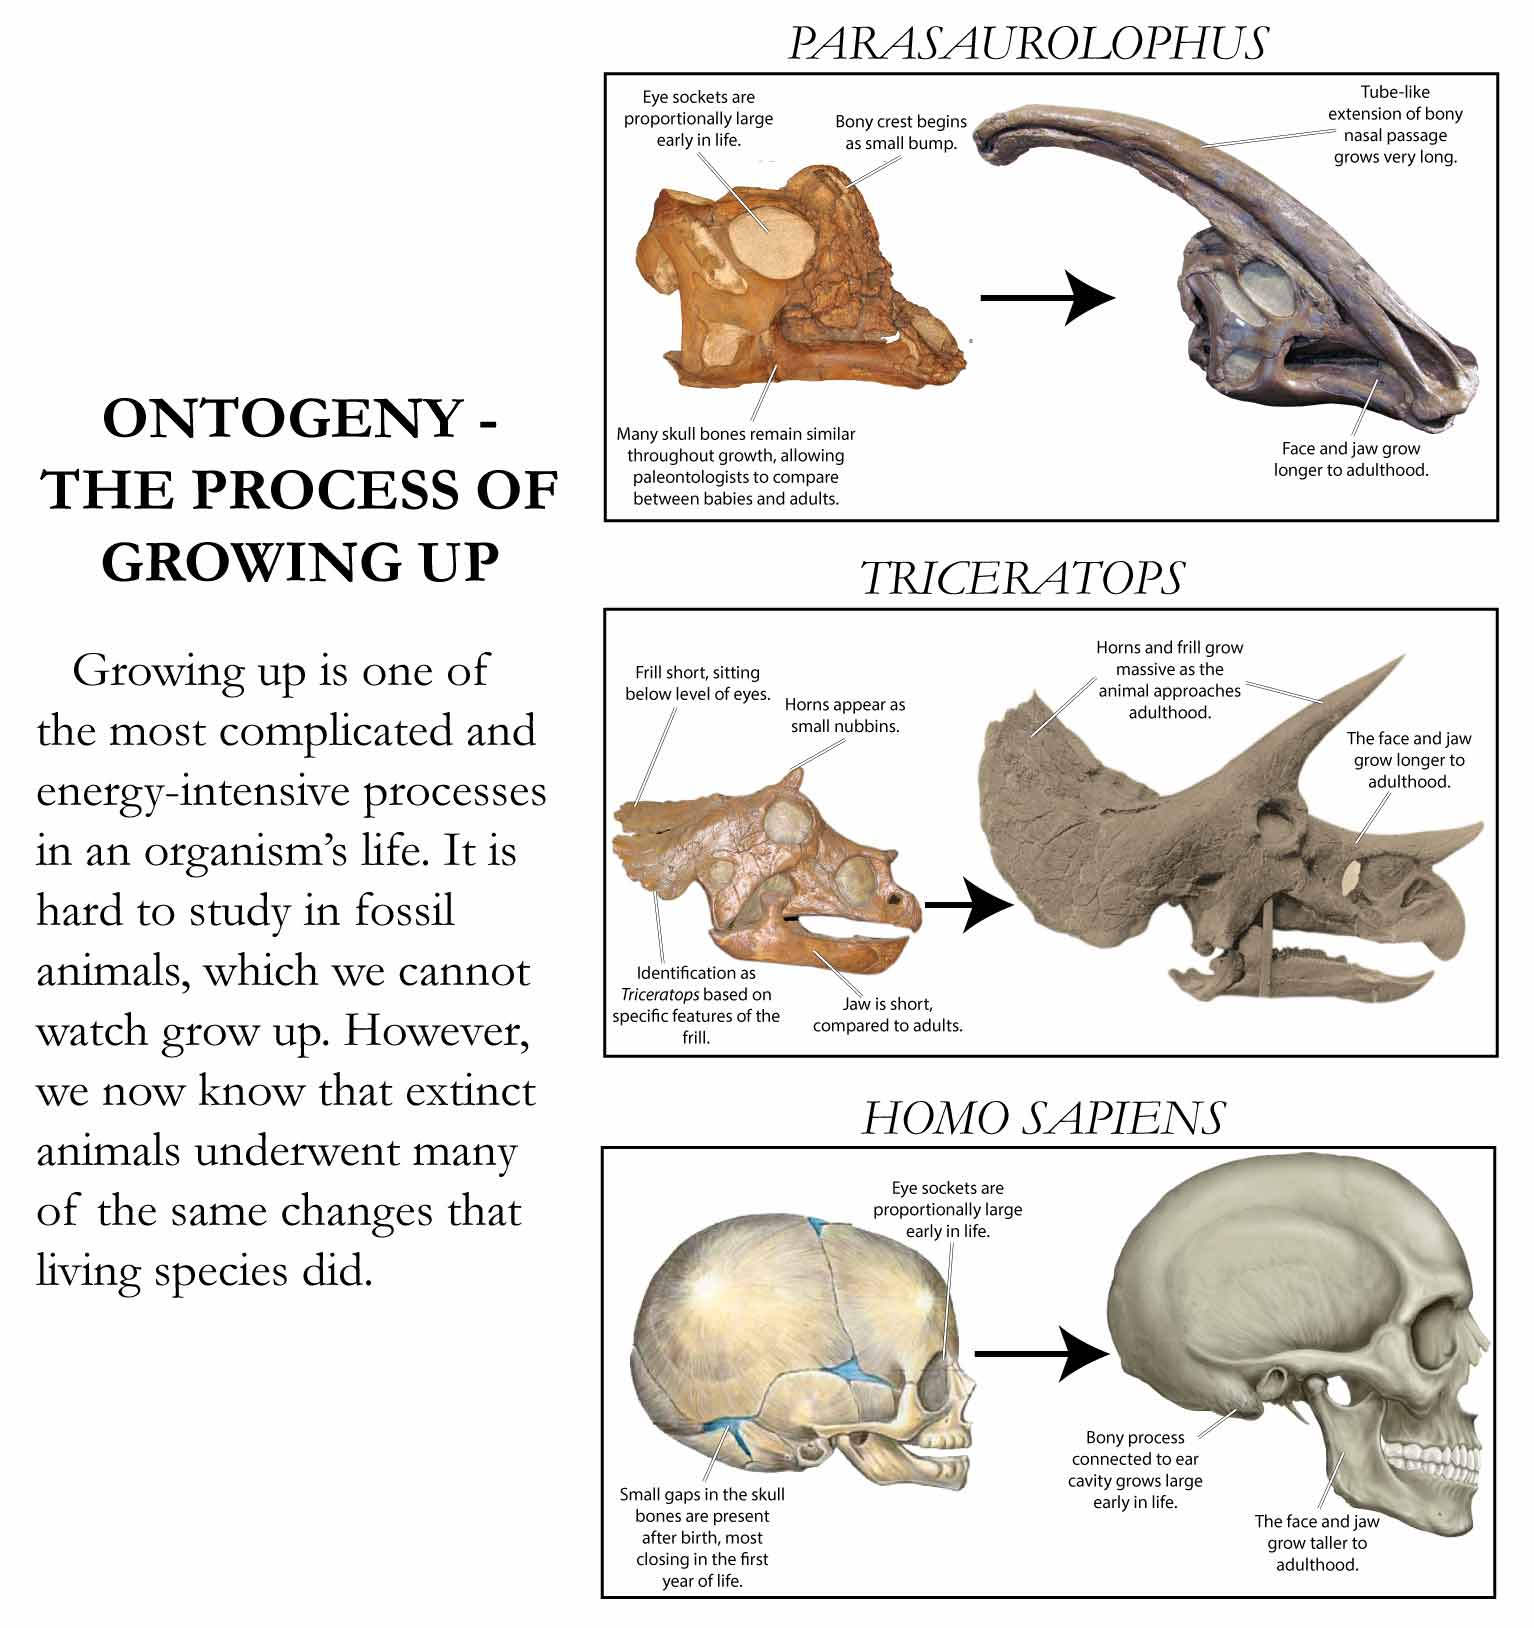 Illustration of ontogenetic growth trends in the dinosaurs Parasaurolophus and Triceratops and modern humans. Trends include fusion of skull elements and elongation of the face and jaw.